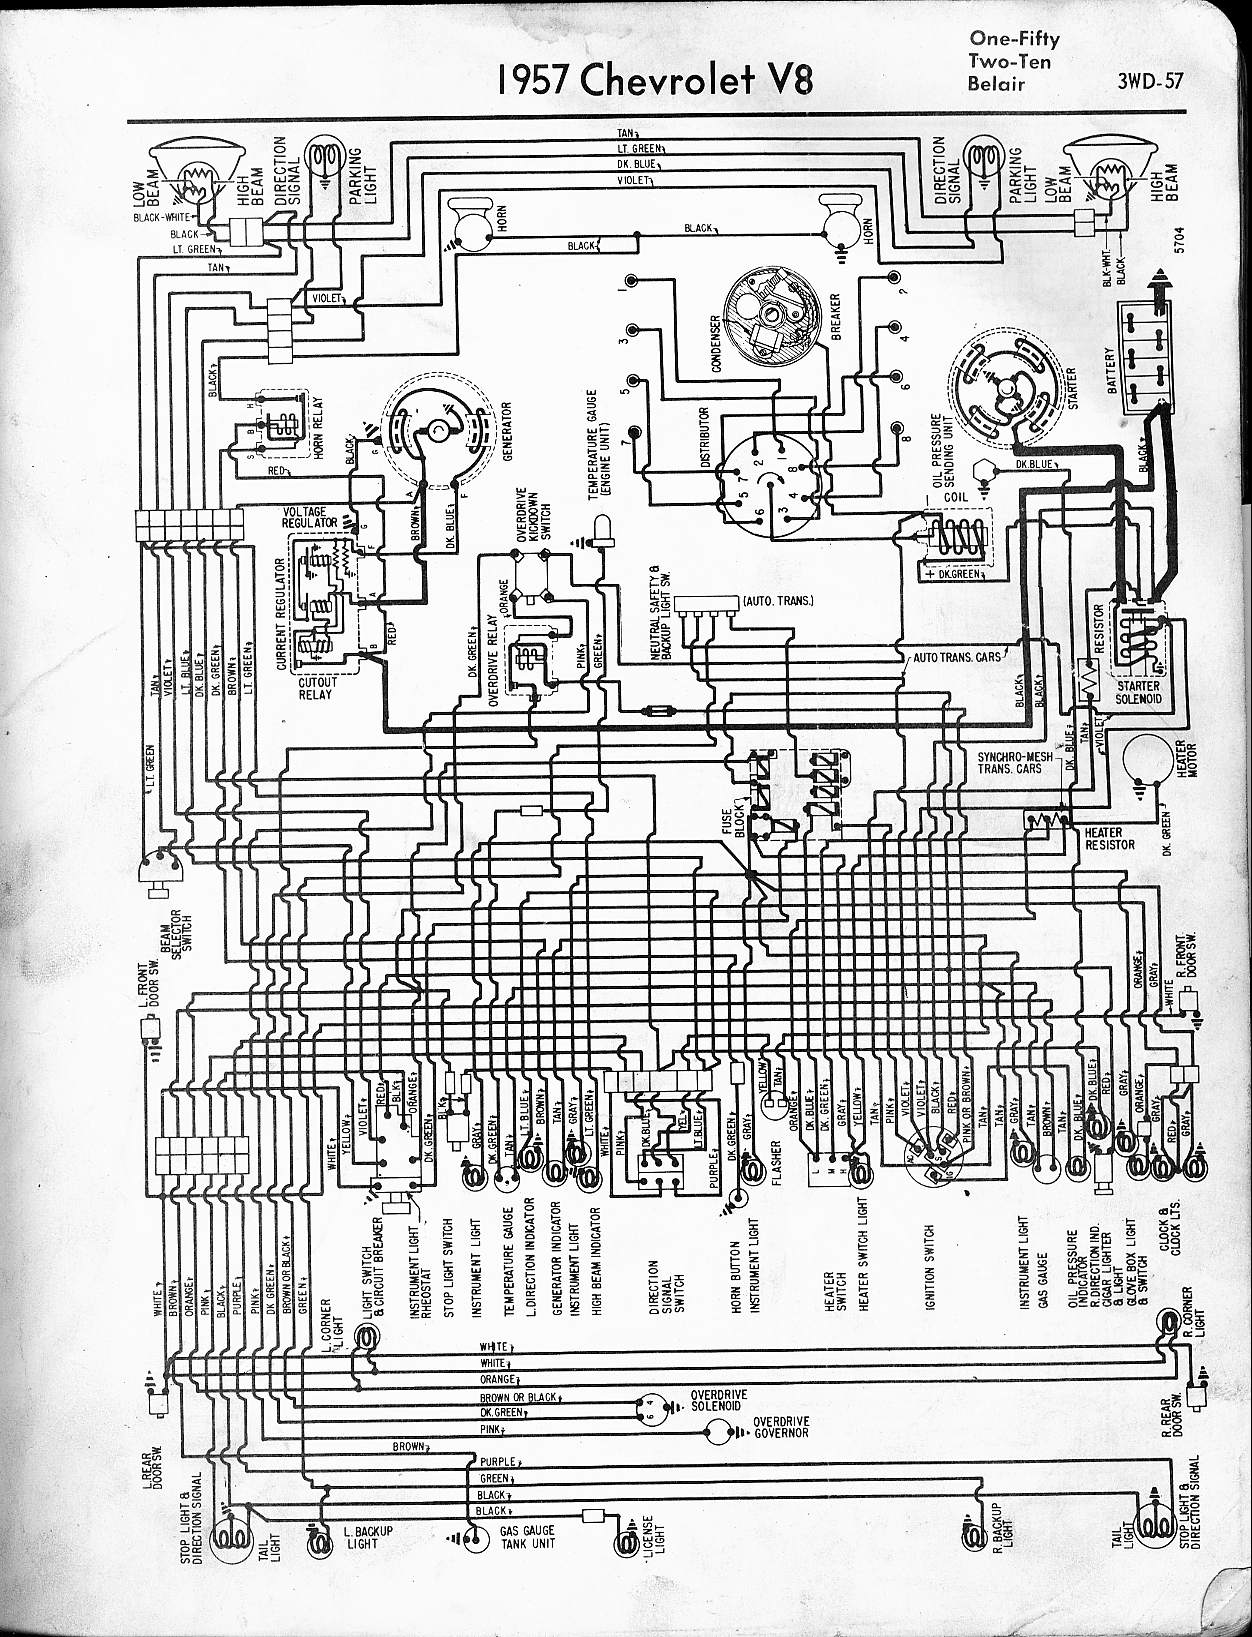 Auto Diagram 1970 Plymouth Wiring 1960 Chevy Truck Library 1957 V8 57 65 Diagrams